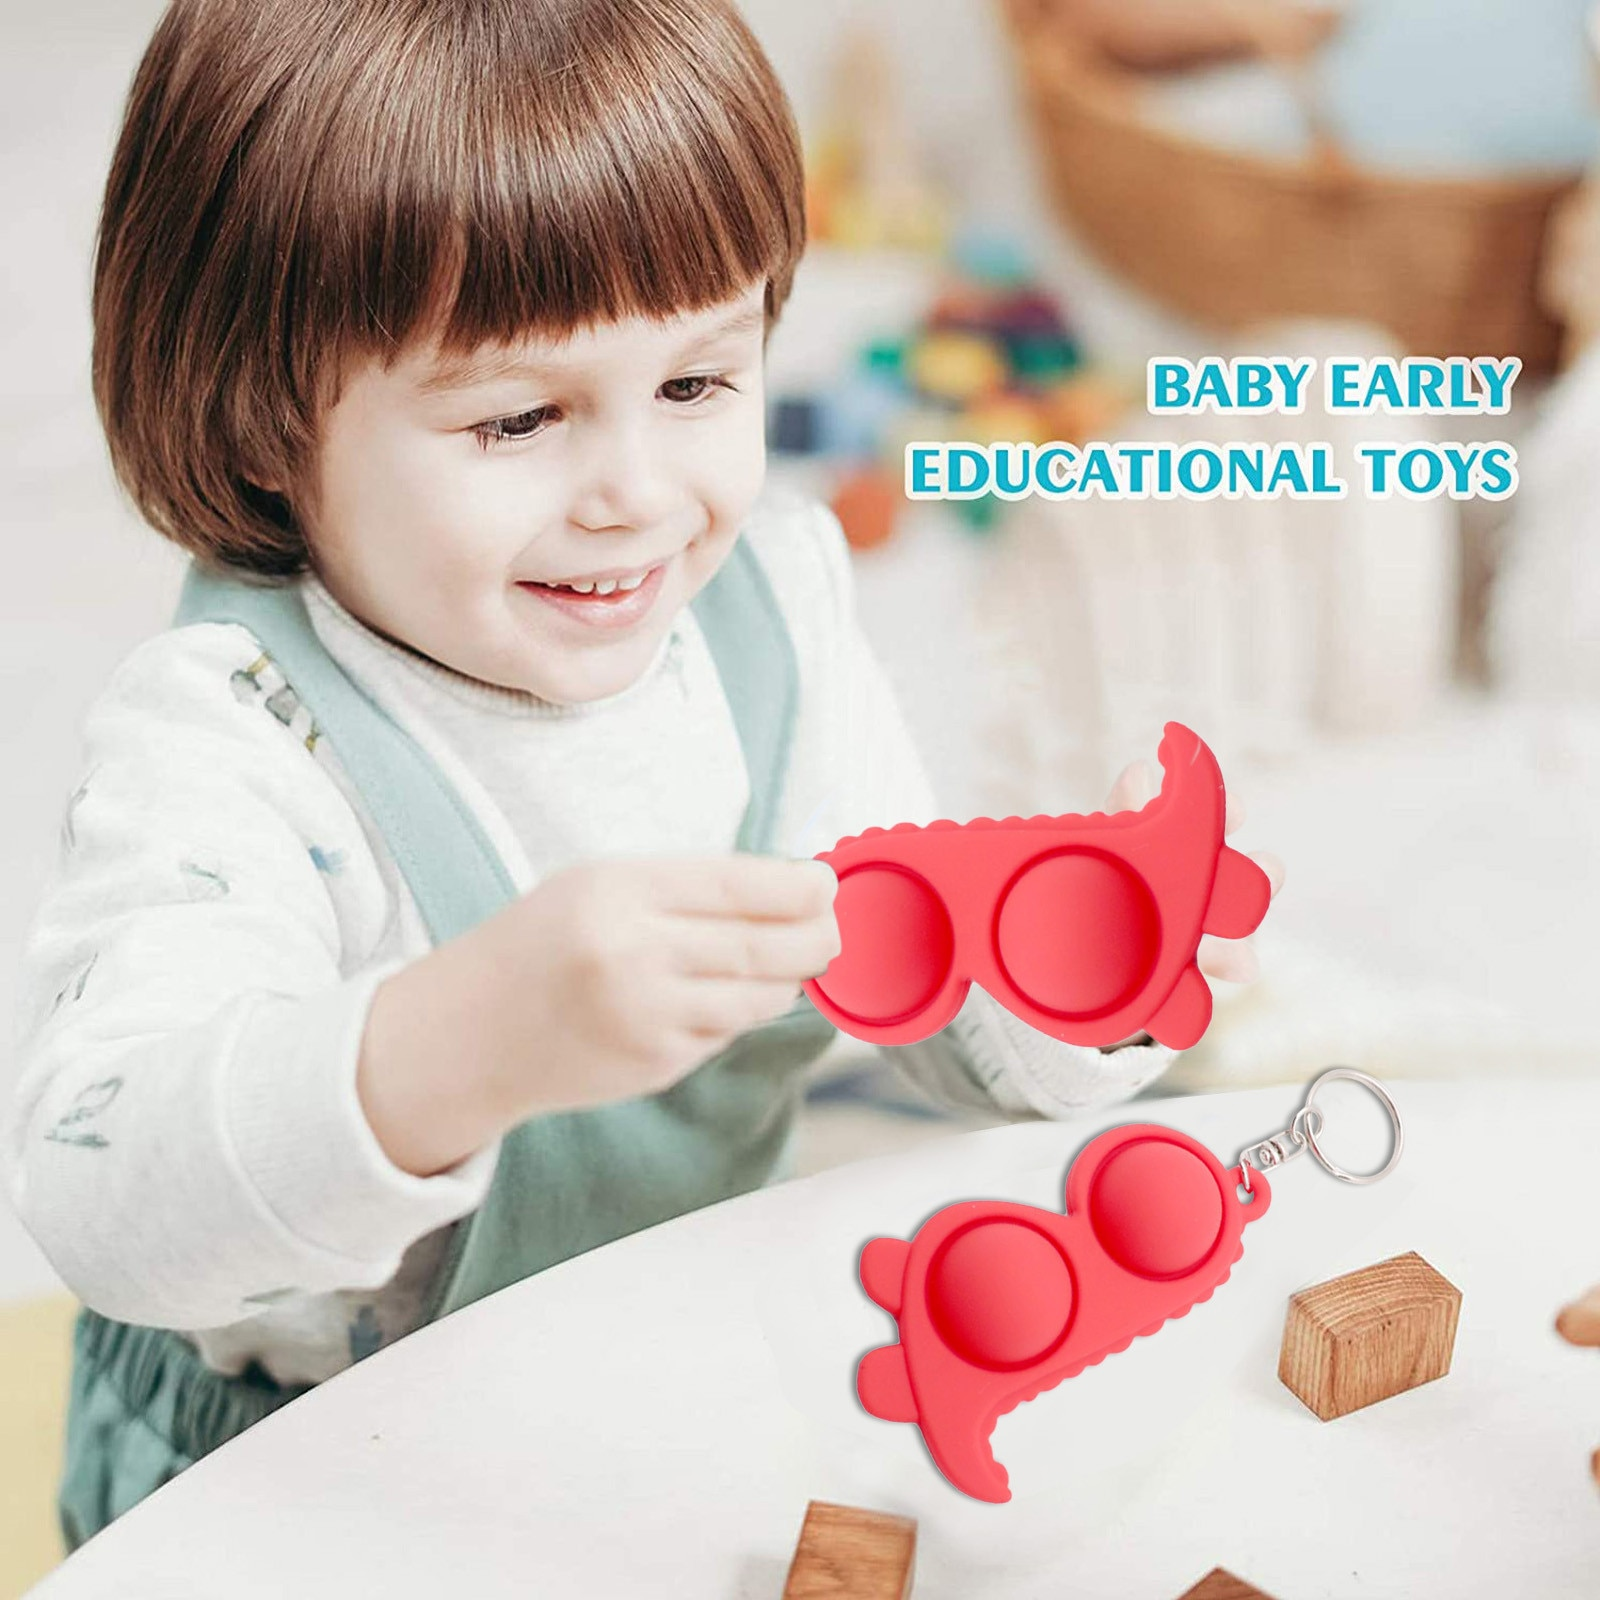 Hf6753e2c87c64734aefc8a07ef456b60u - #AA Simple Dimple Fidget Toys Adult Children Antistress Hand Toys Pressure Reliever Board Controller Reliver Stress Toys